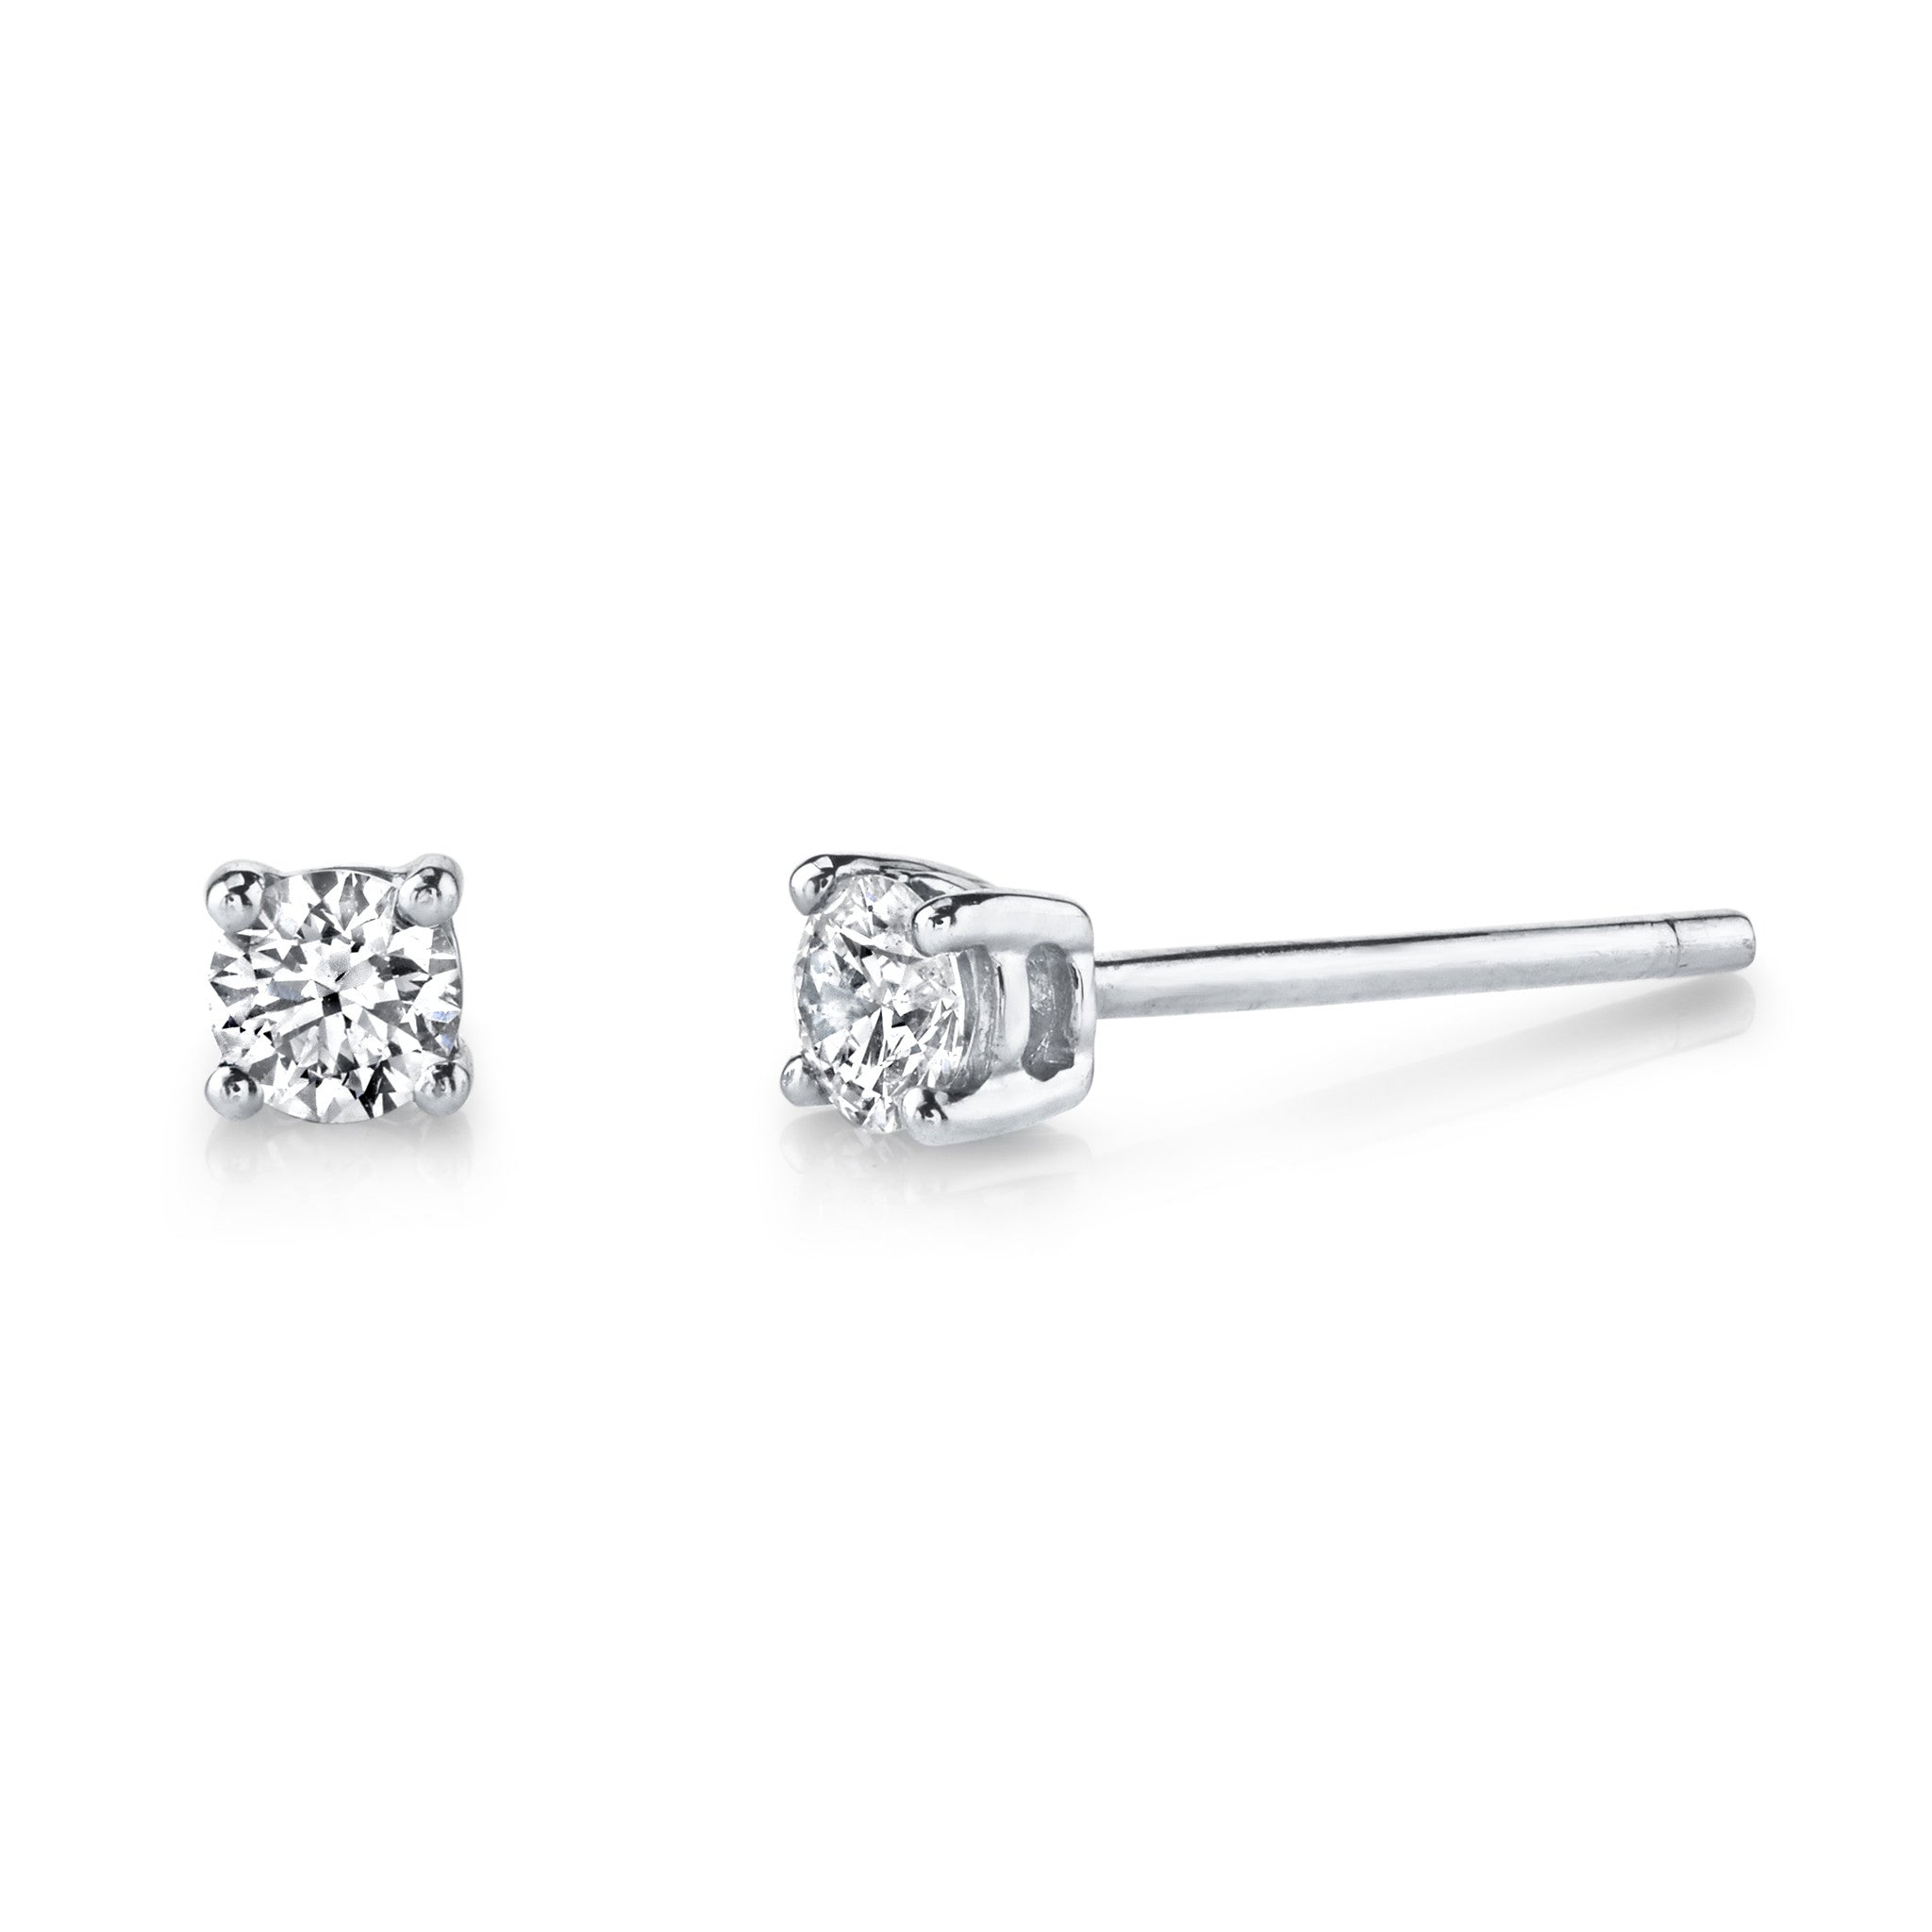 diamonds coster diamond white earrings gold royal stud catalog earring blog